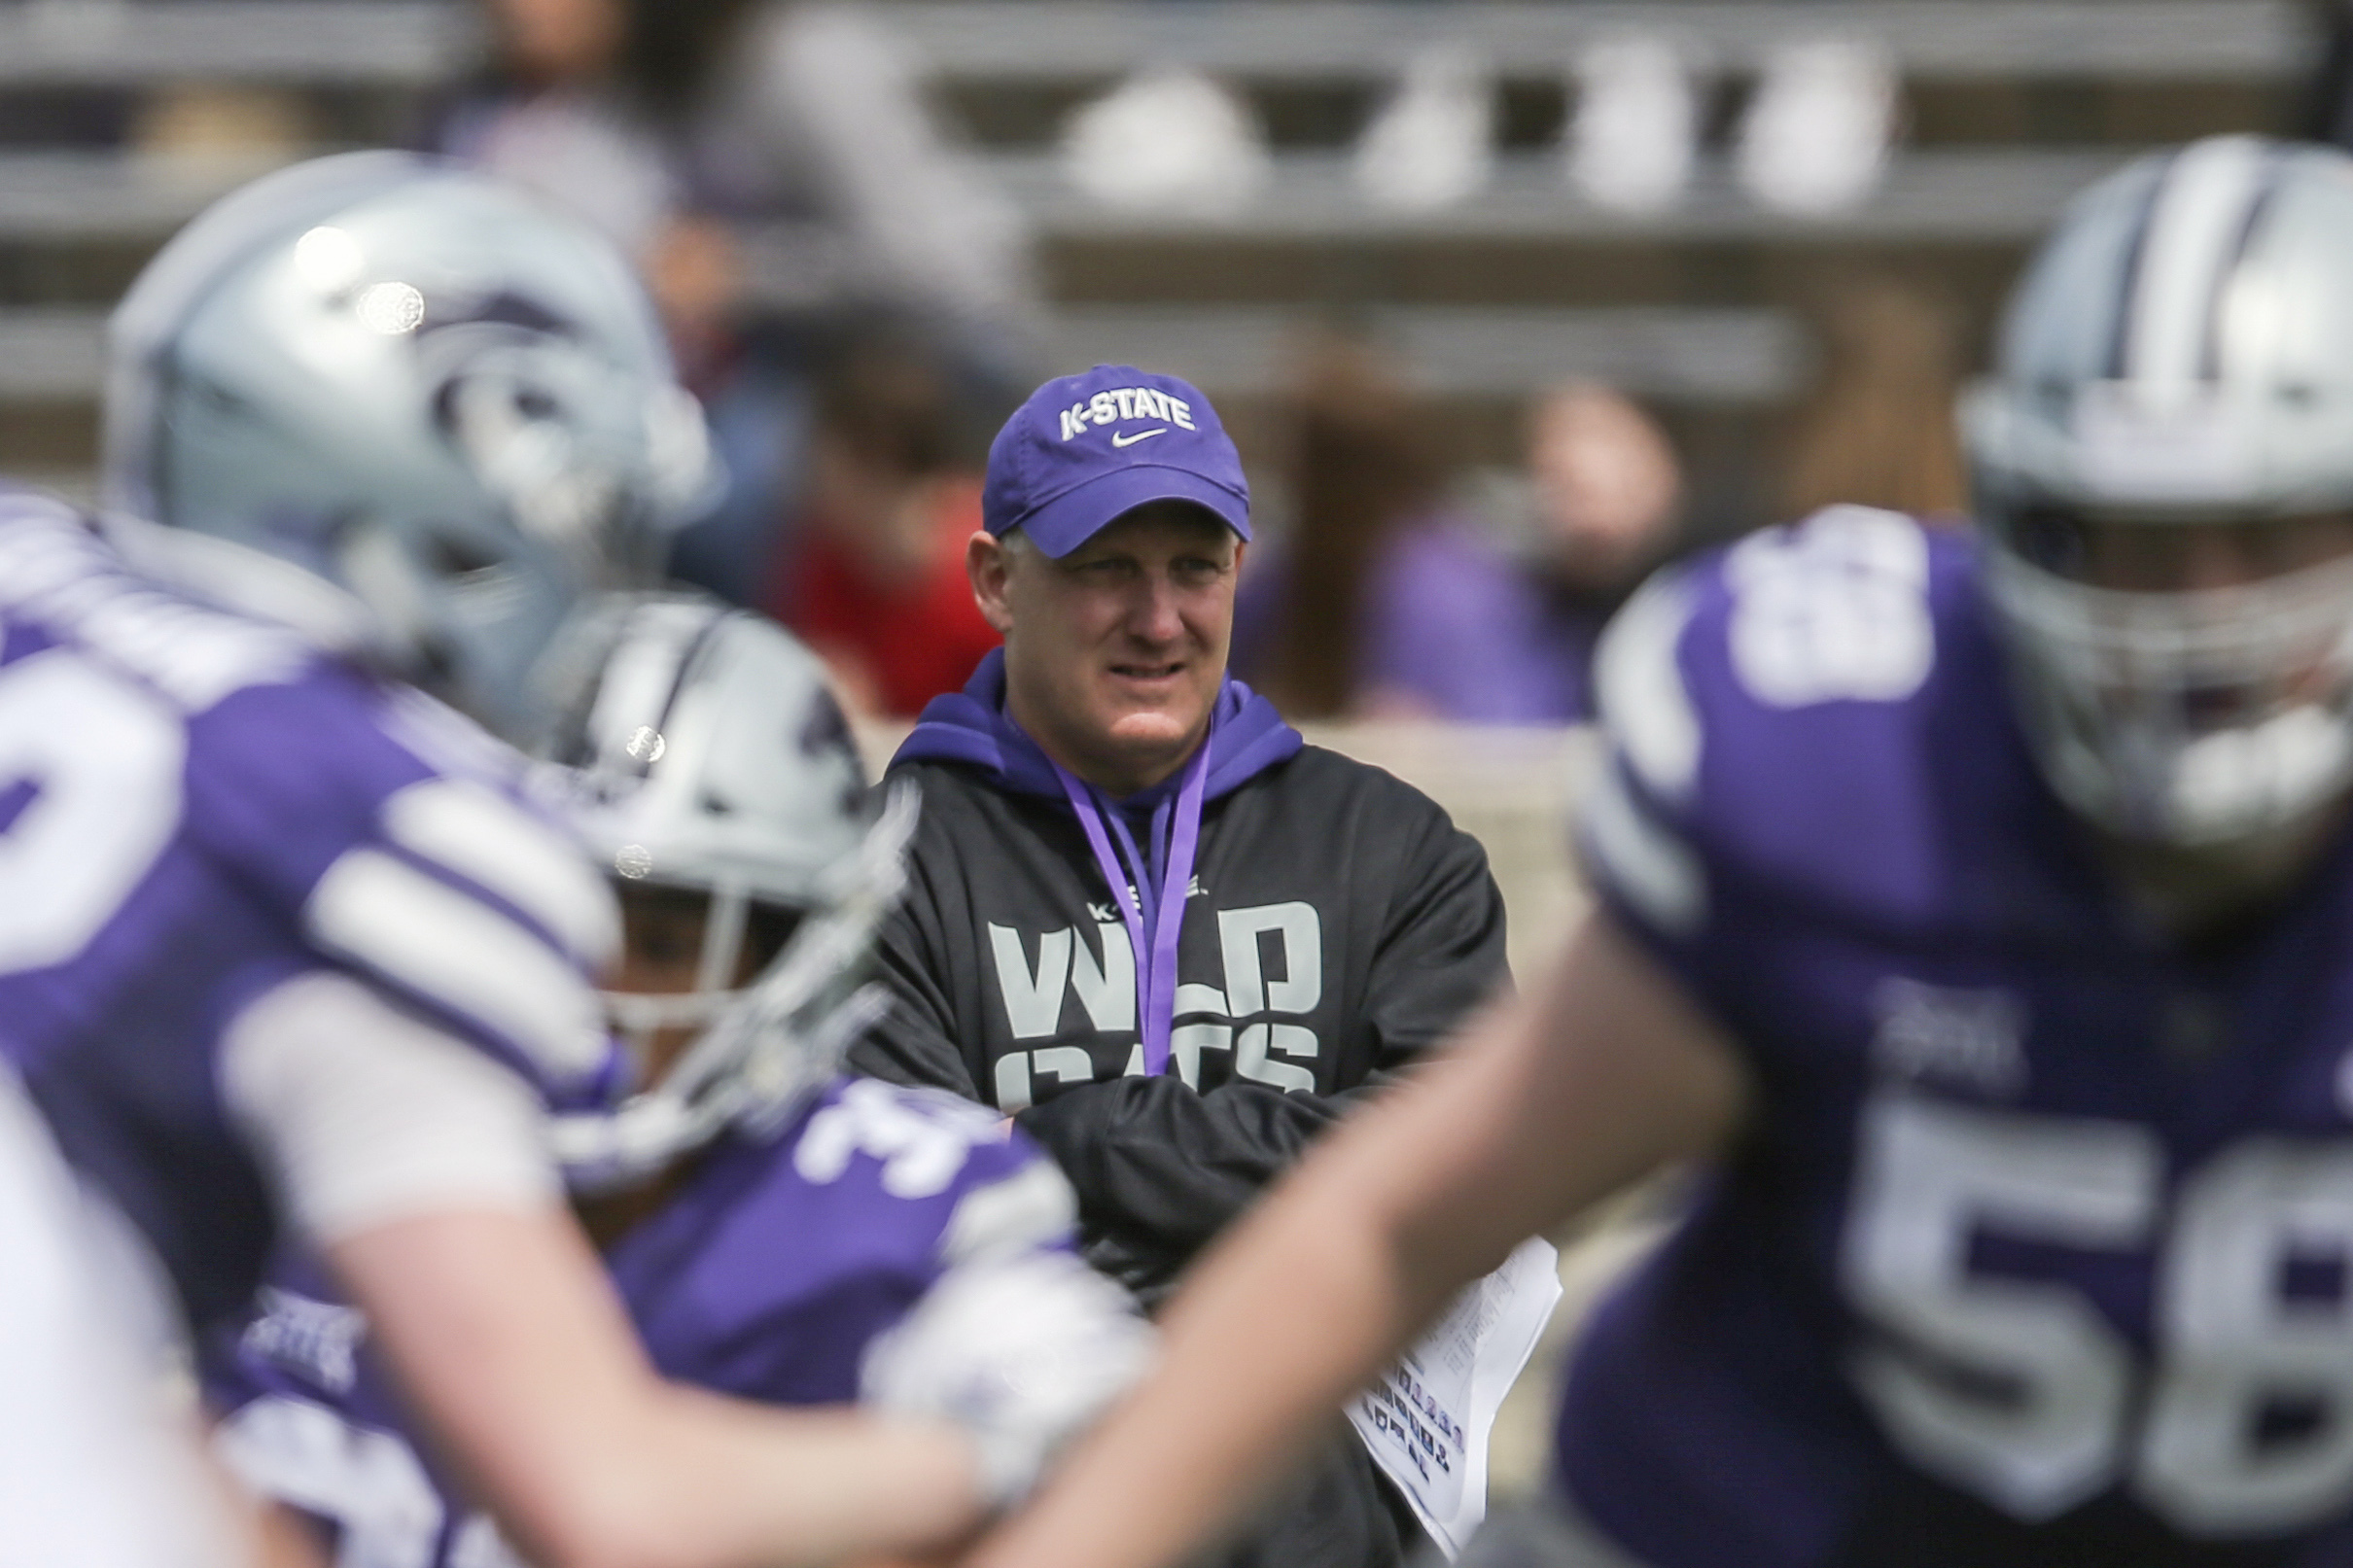 K-State begins Chris Klieman era against Nicholls State